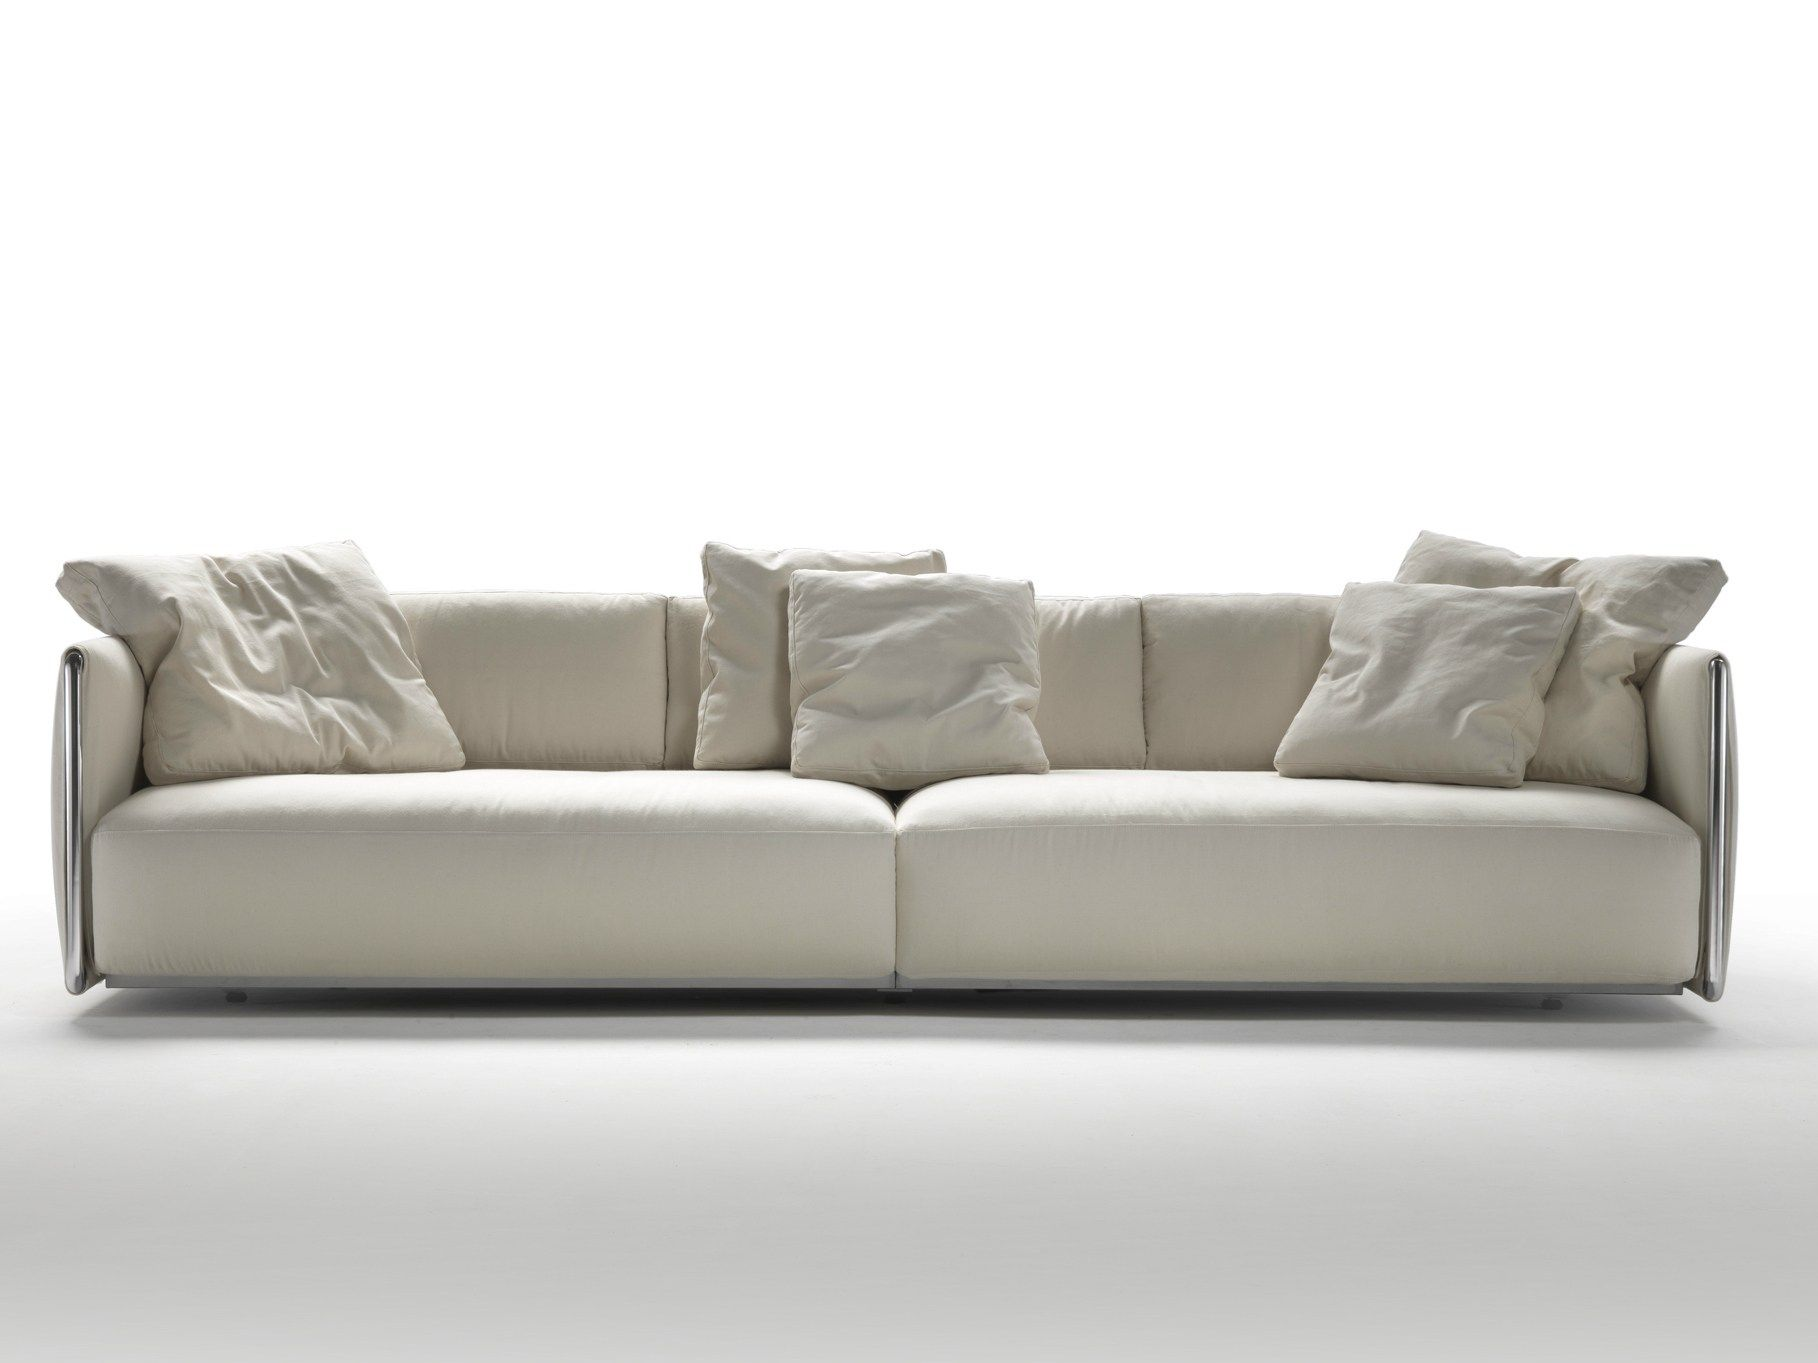 Fabric sofa with removable cover EDMOND by FLEXFORM design Carlo